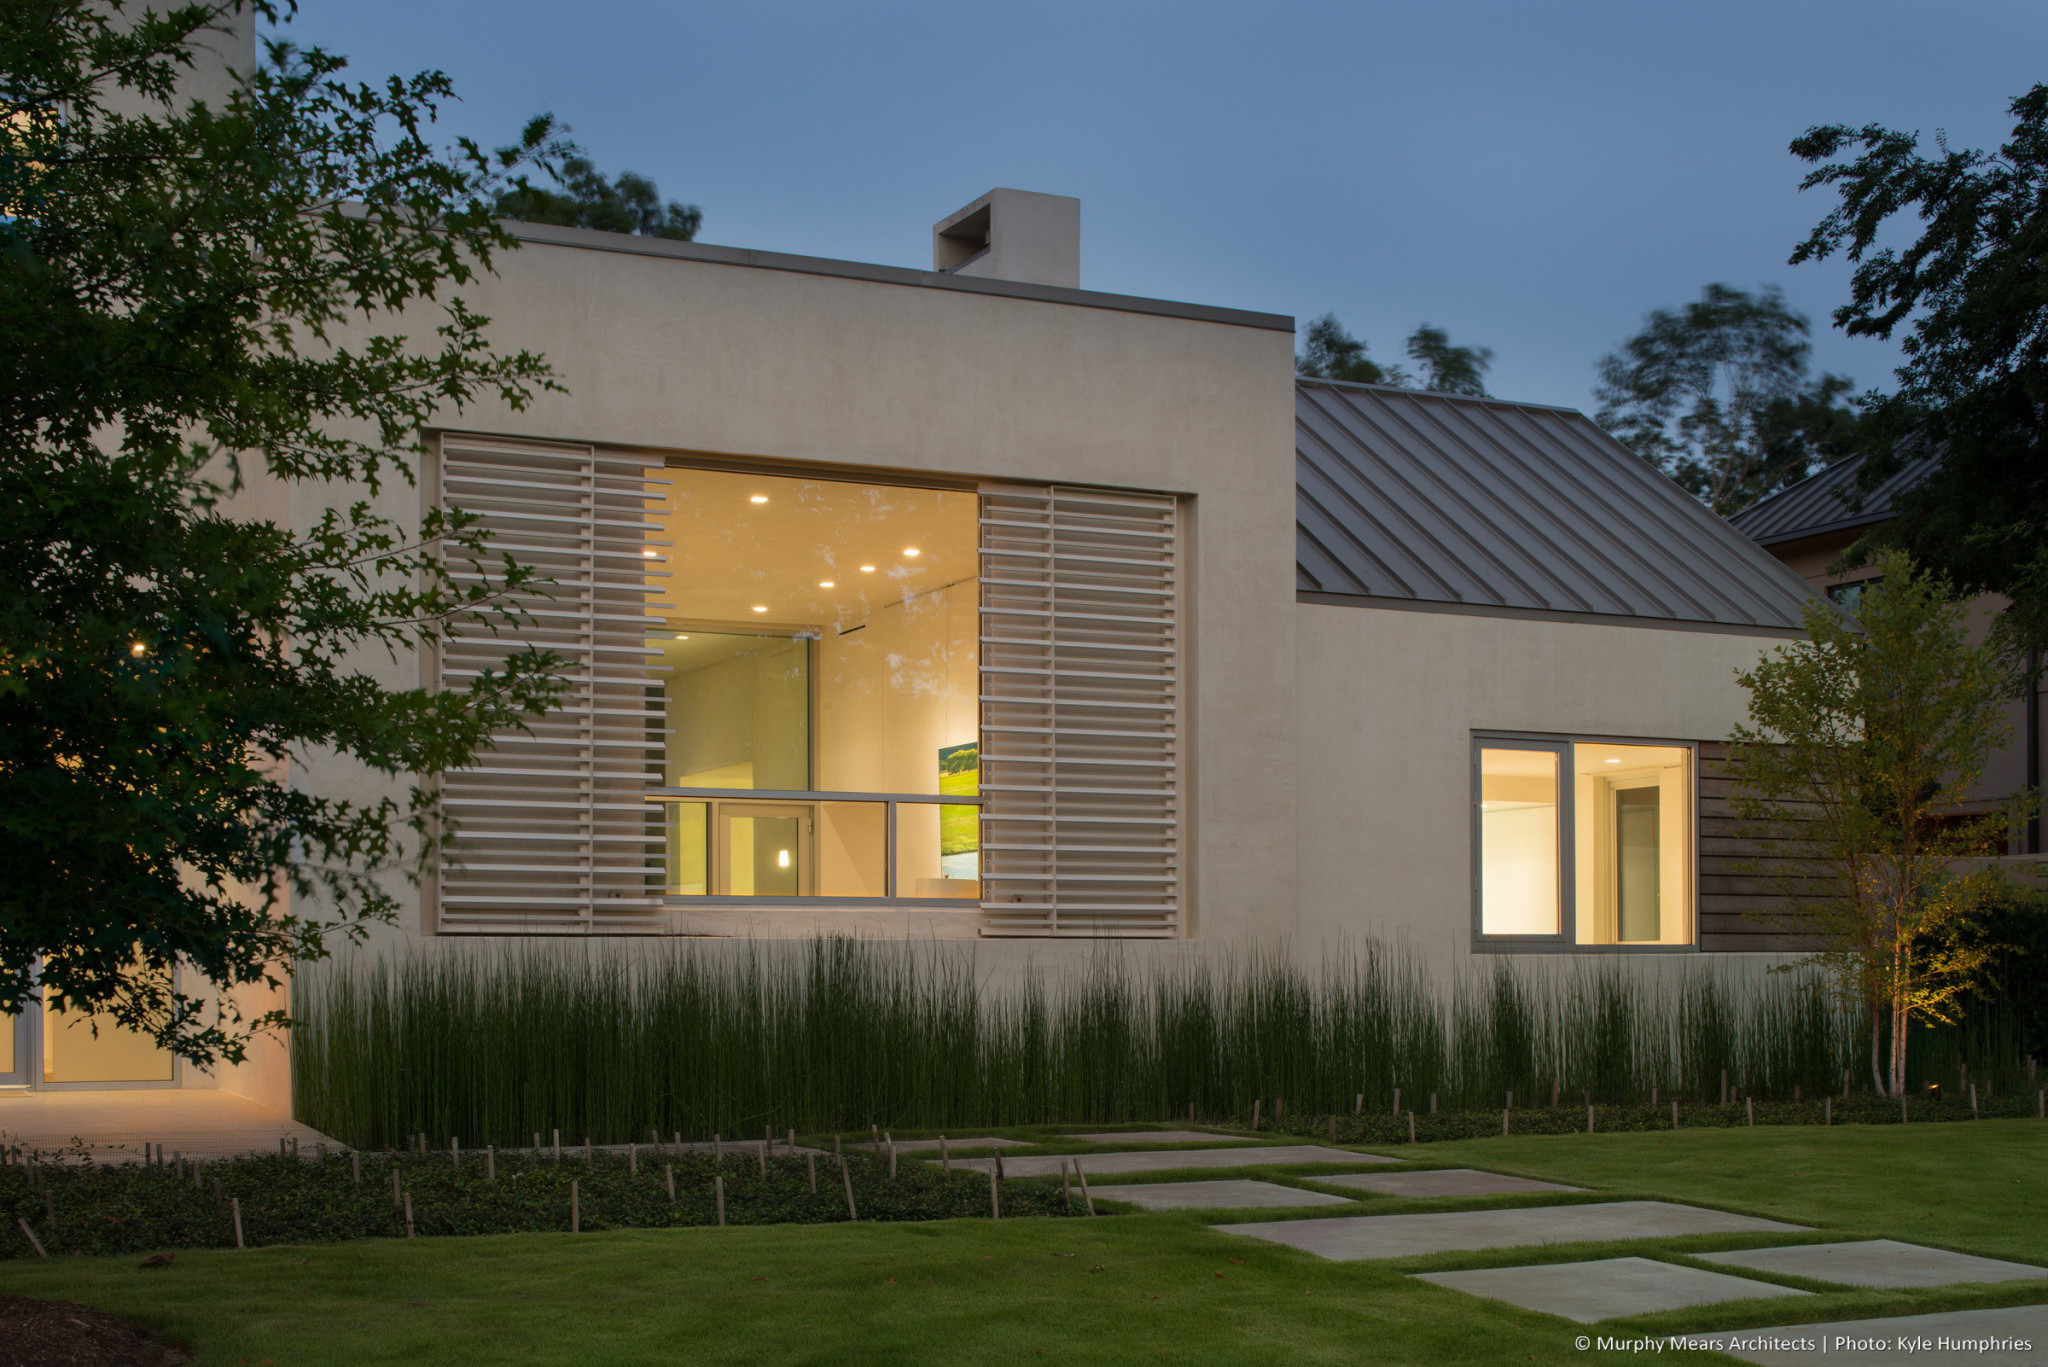 Murphy Mears Architects